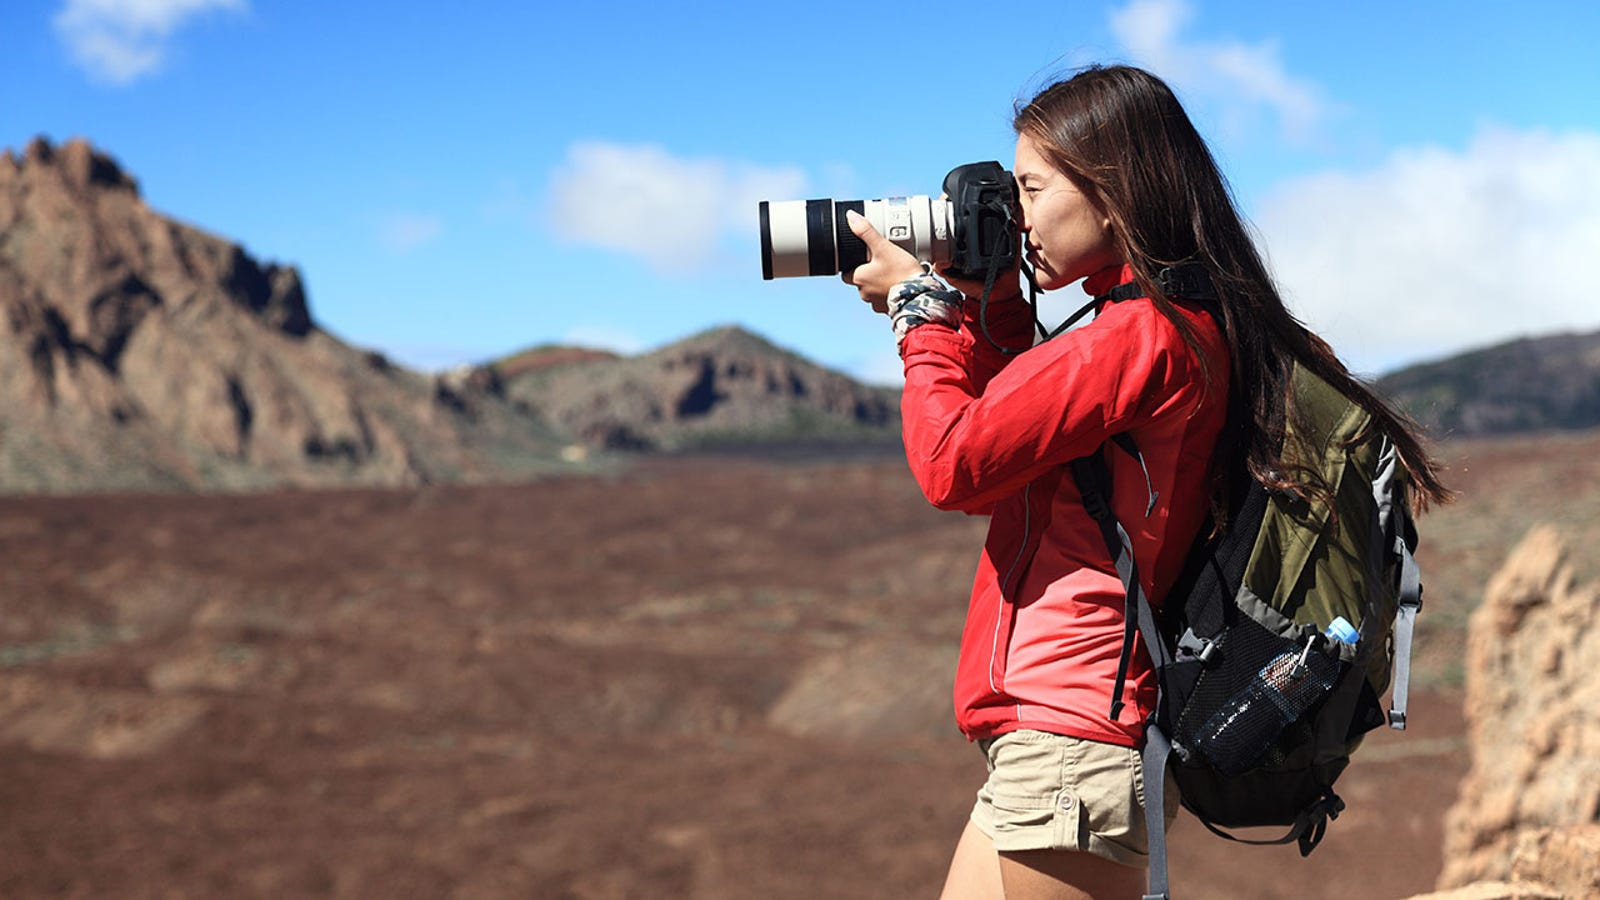 How to Travel Safely As a Photographer images